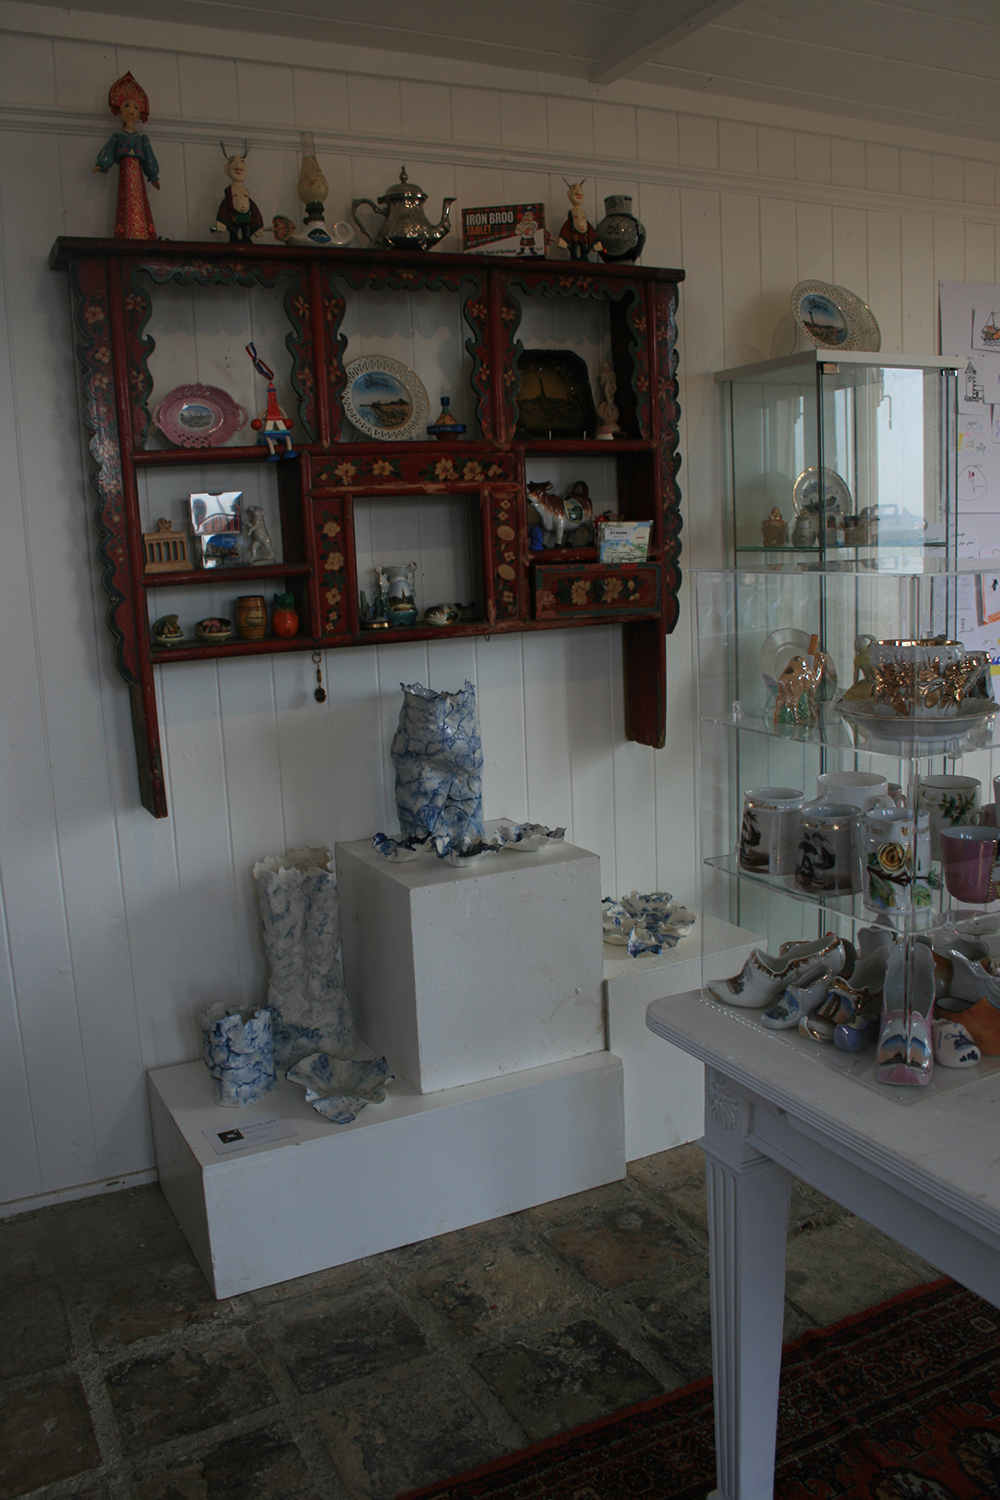 The artwork - made up of souvenirs from the collections of Eileen Haring Woods and Deborah Jaffé alongside the Shoreline ceramics made by Deborah.